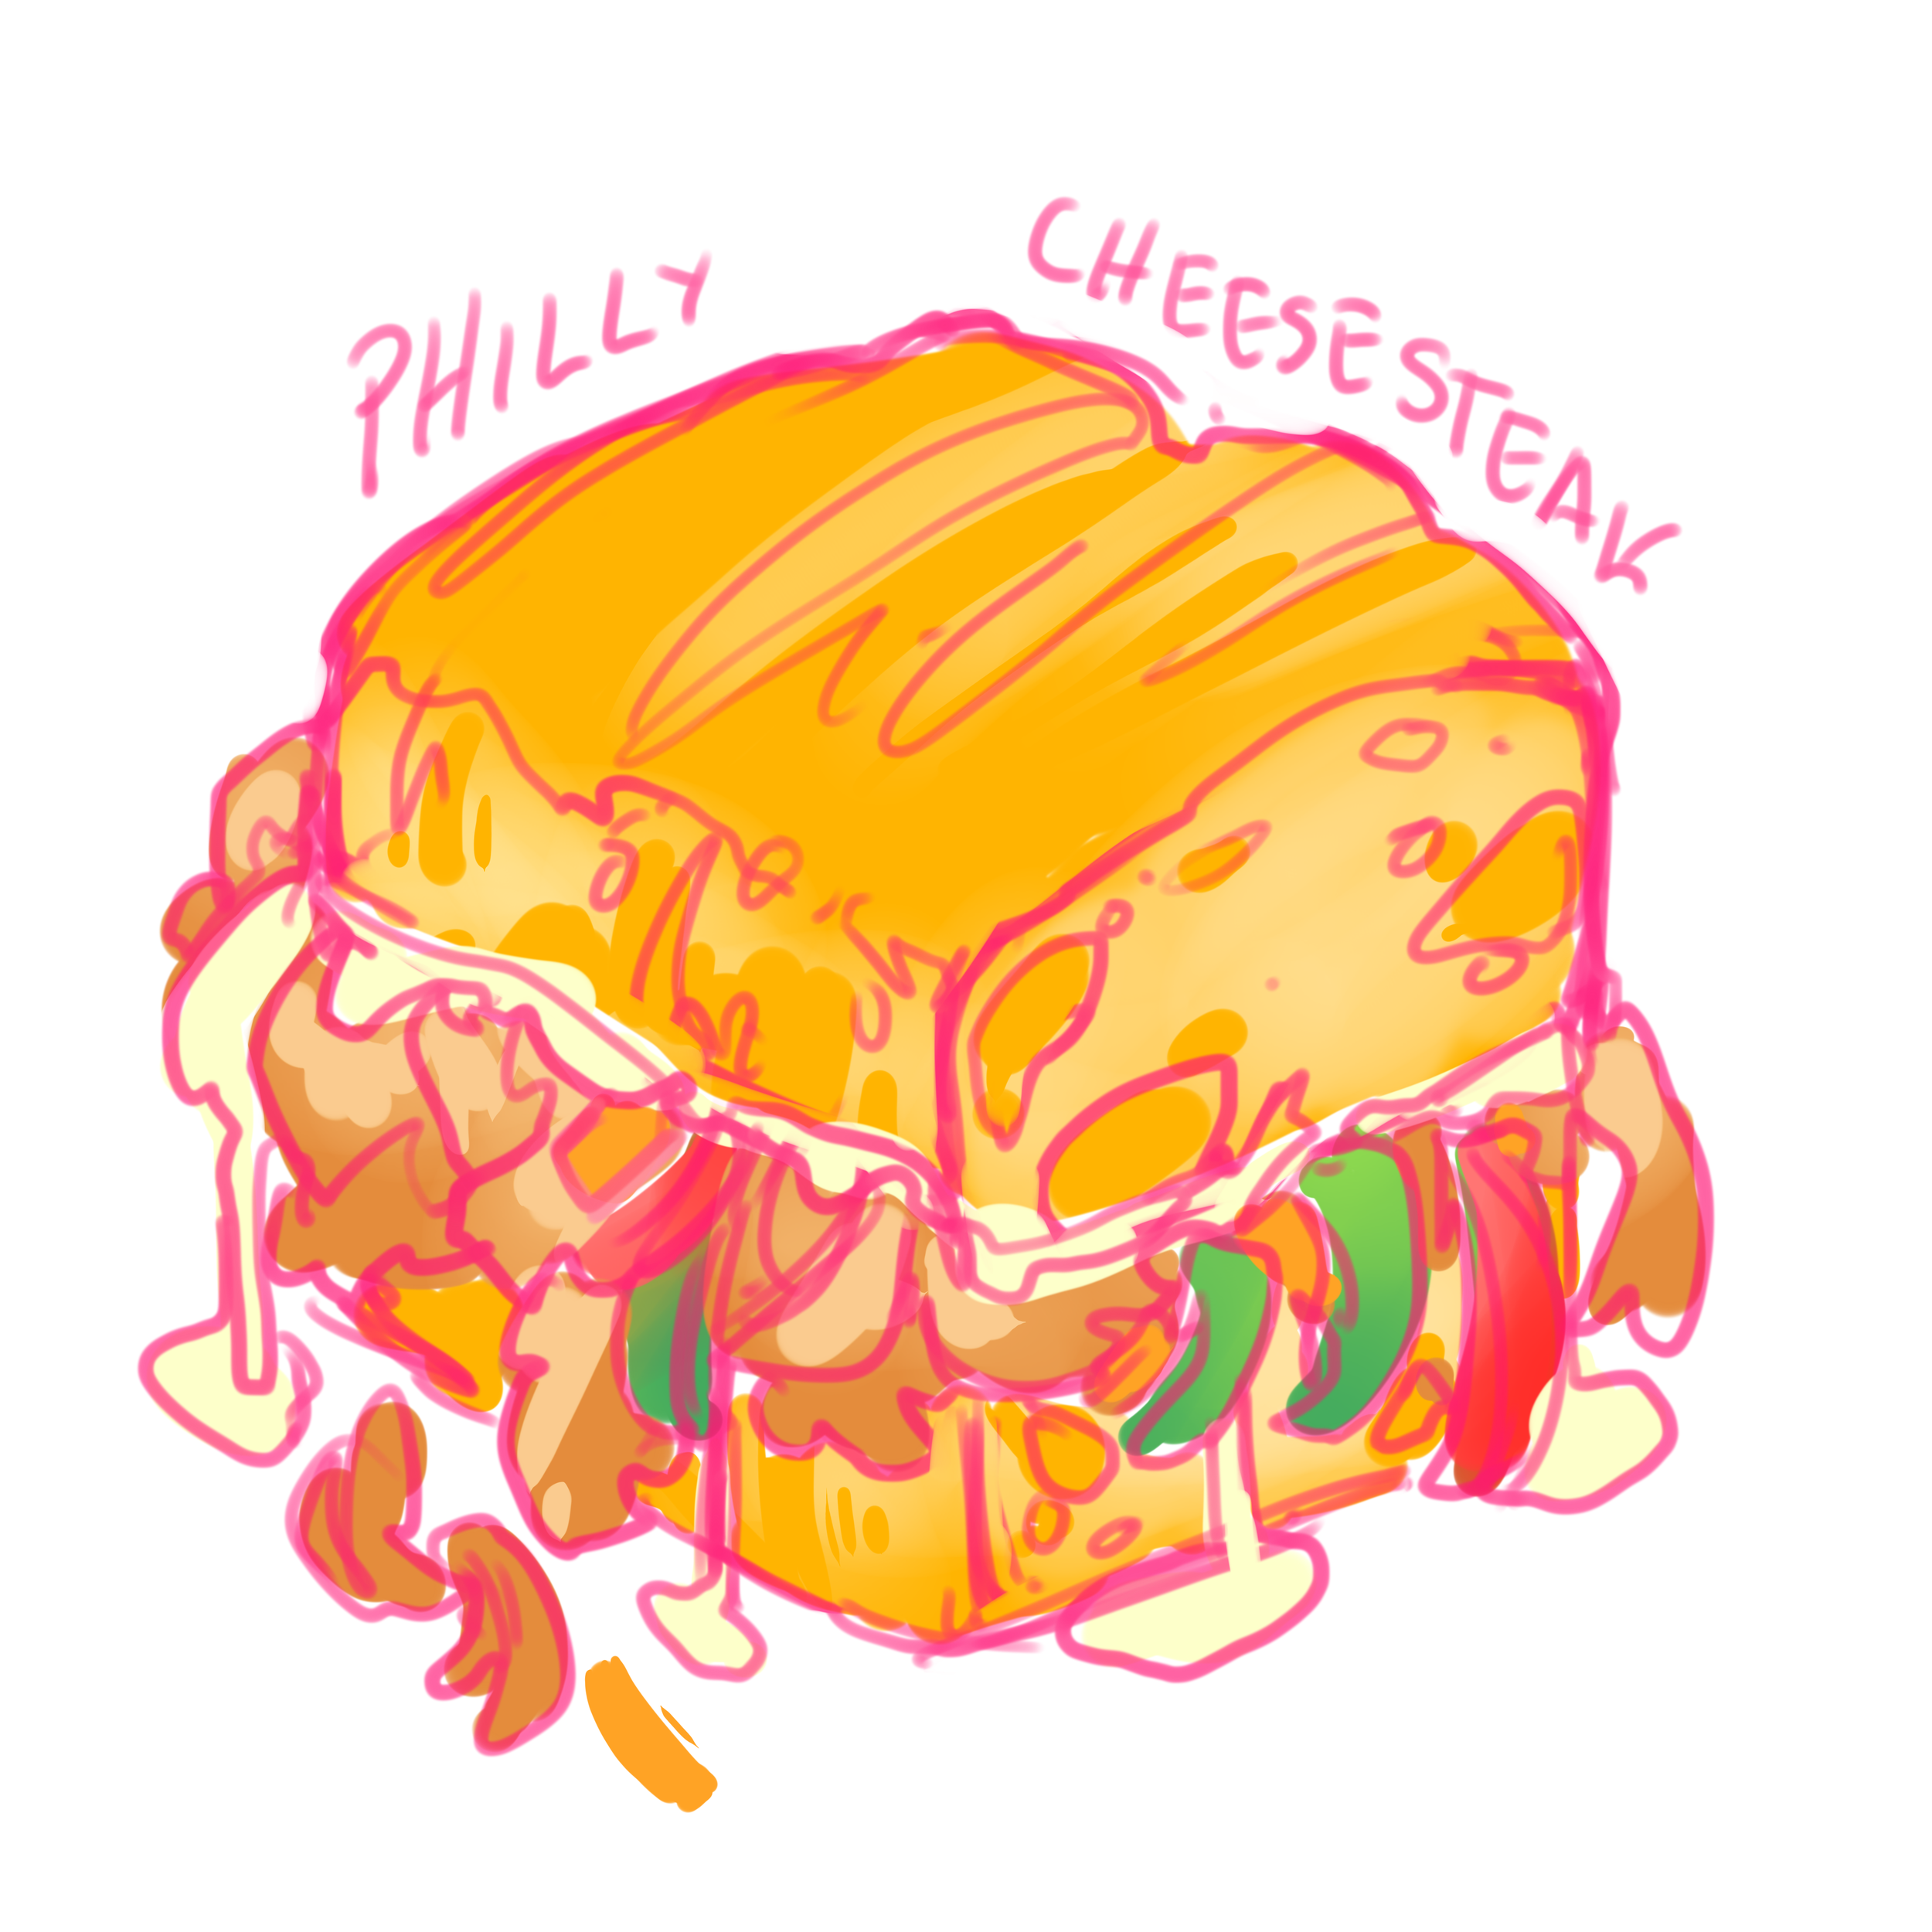 phillycheesesteakdraft1 - Copy.png